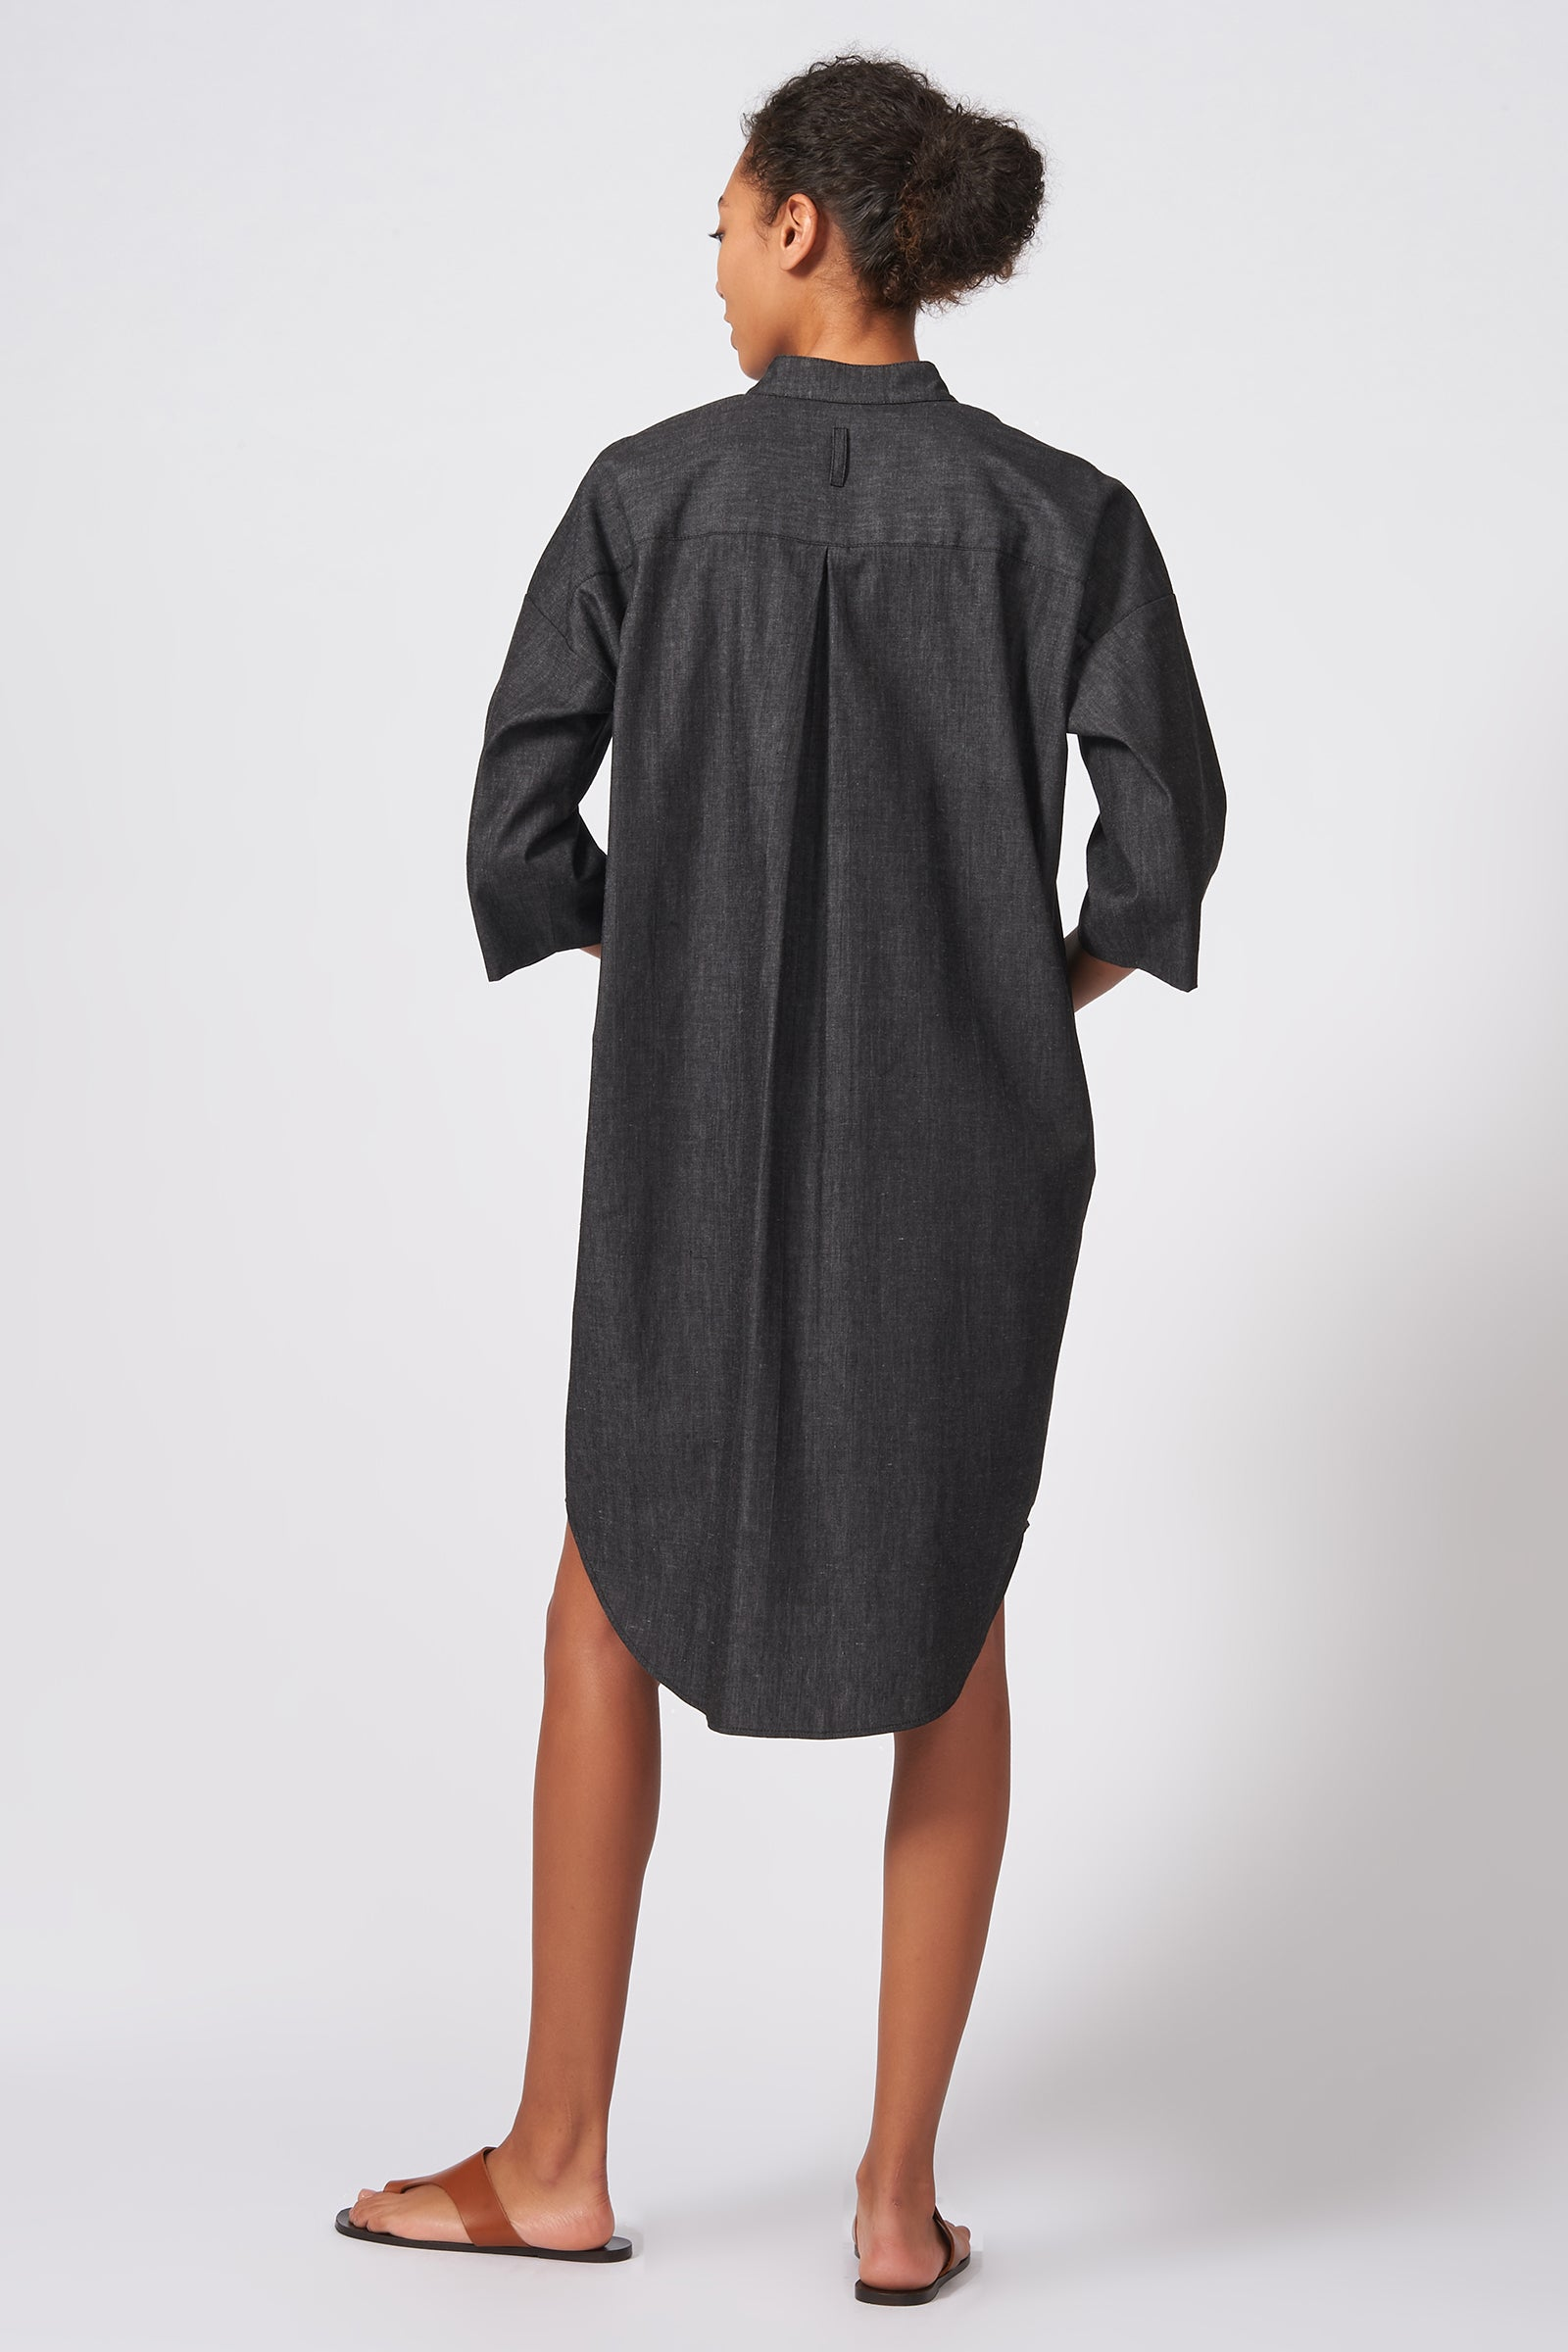 Kal Rieman Drop Sleeve Shirt Dress in Dark Denim on Model Back Full View